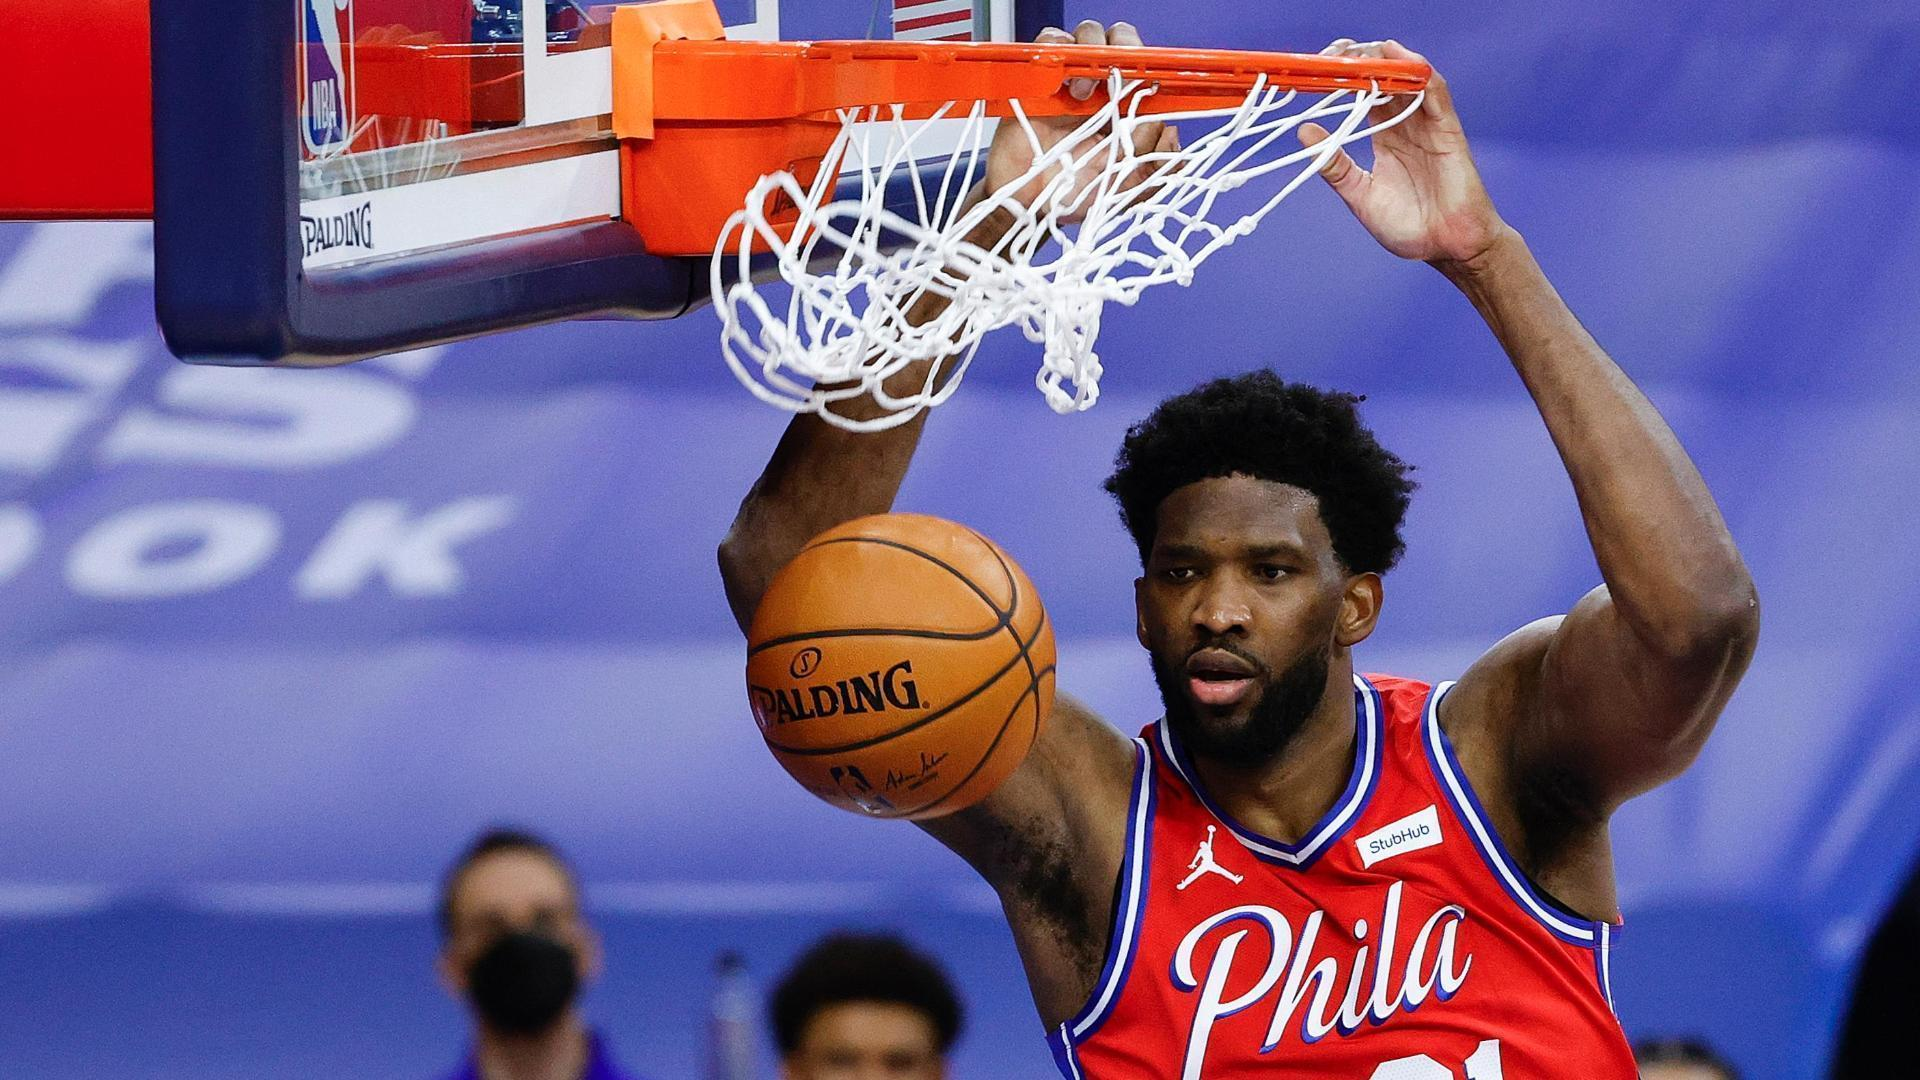 The highlights that put Joel Embiid's greatness on display